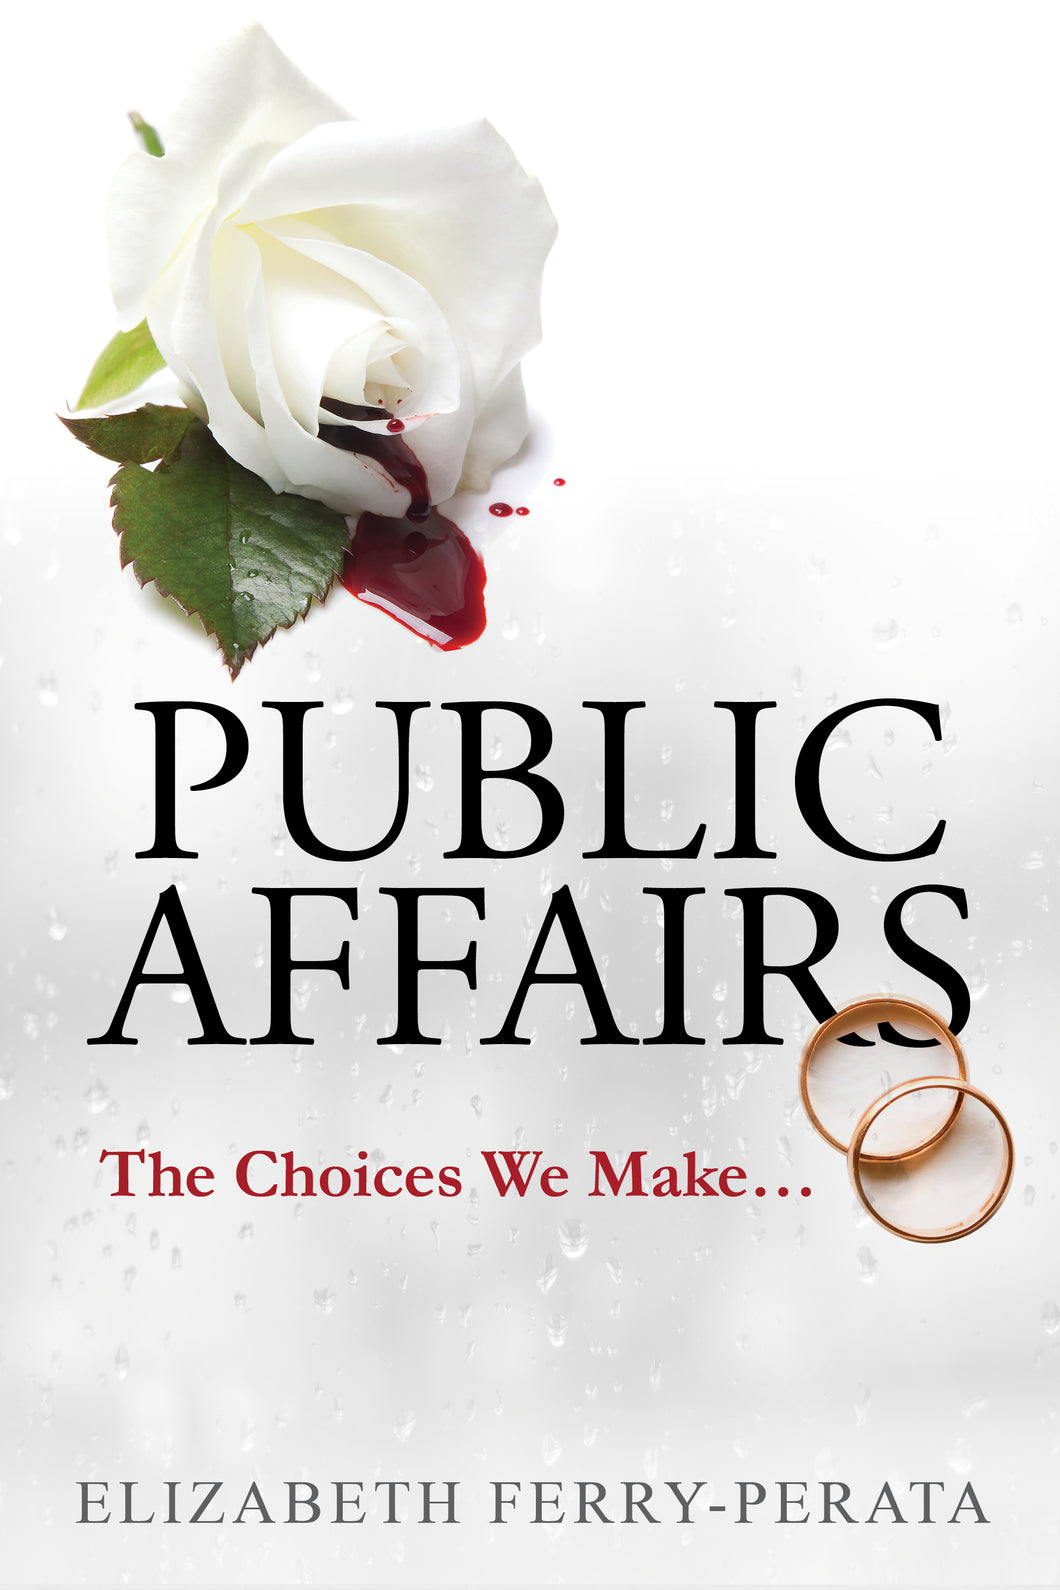 Public Affairs - The Choices We Make